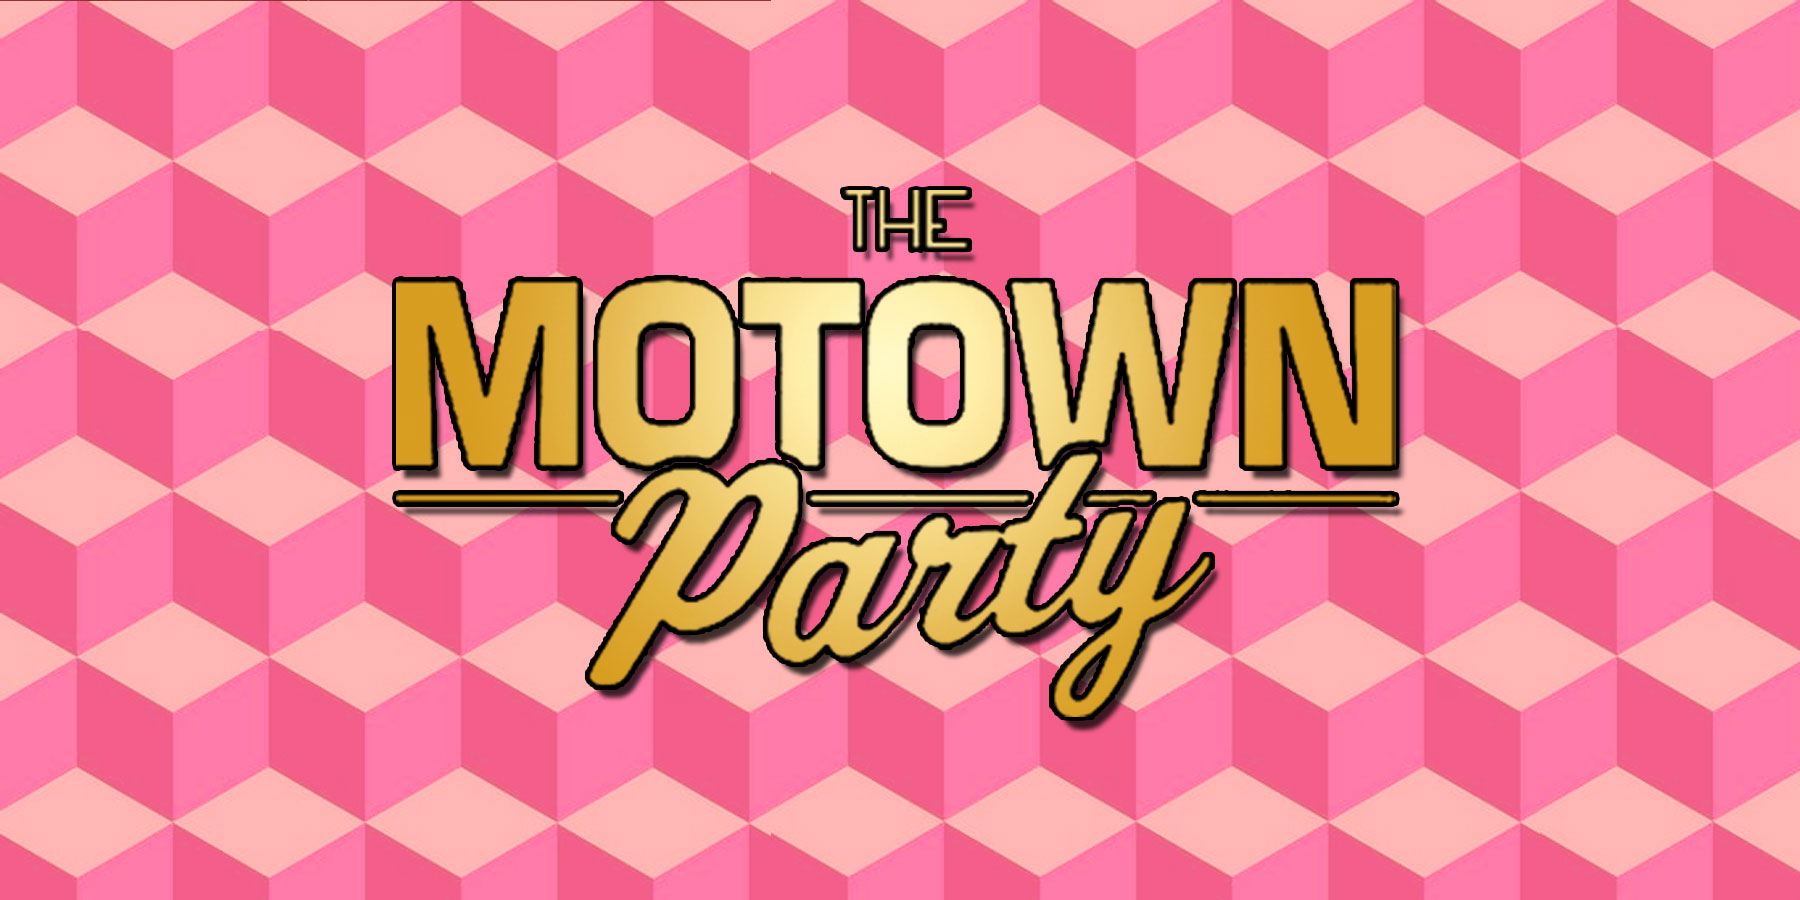 We're back from Chicago to TORONTO, our hometown and we're comin to make you shimmy & shake your tail feather with Motown Party: The best damn soul party in the world!  ☆ ☆ ☆ ☆ ☆ ☆ ☆ ☆ ☆ ☆ ☆ ☆ ☆ ☆ ☆ ☆ ☆ ☆ ☆ ☆ ☆ We're gonna put on a show you've never experienced before:  ☆ ☆ ☆ ☆ ☆ ☆ ☆ ☆ ☆ ☆ ☆ ☆ ☆ ☆ ☆ ☆ ☆ ☆ ☆ ☆ ☆ THE WORLD FAMOUS MOTOWN PARTY Sat July 7th @ ROUND venue (152 A Augusta Ave) DJ GROUCH, DJ DOLO ROCK, ESP ADVANCE TIX & VIP TABLES: http://bit.ly/motownjuly  ☆ ☆ ☆ ☆ ☆ ☆ ☆ ☆ ☆ ☆ ☆ ☆ ☆ ☆ ☆ ☆ ☆ ☆ ☆ ☆ ☆  ALL the best and brightest music from all your favourite artists from the Motown Records, Northern Soul, Stax Records labels throughout the night, played by some of this city's best DJs and MOTOWN GO-GO DANCERS with proceeds going to local charities   About: Motown Party is a network of soul music events that happens in over 8 cities worldwide with each cities best DJs while raising money for local charities.  You can see tour schedules, photos and pictures at  www.themotownparty.com   PLEASE SPREAD THE WORD. and share this event with your friends!  Our Facebook page: www.facebook.com/themotownparty.com